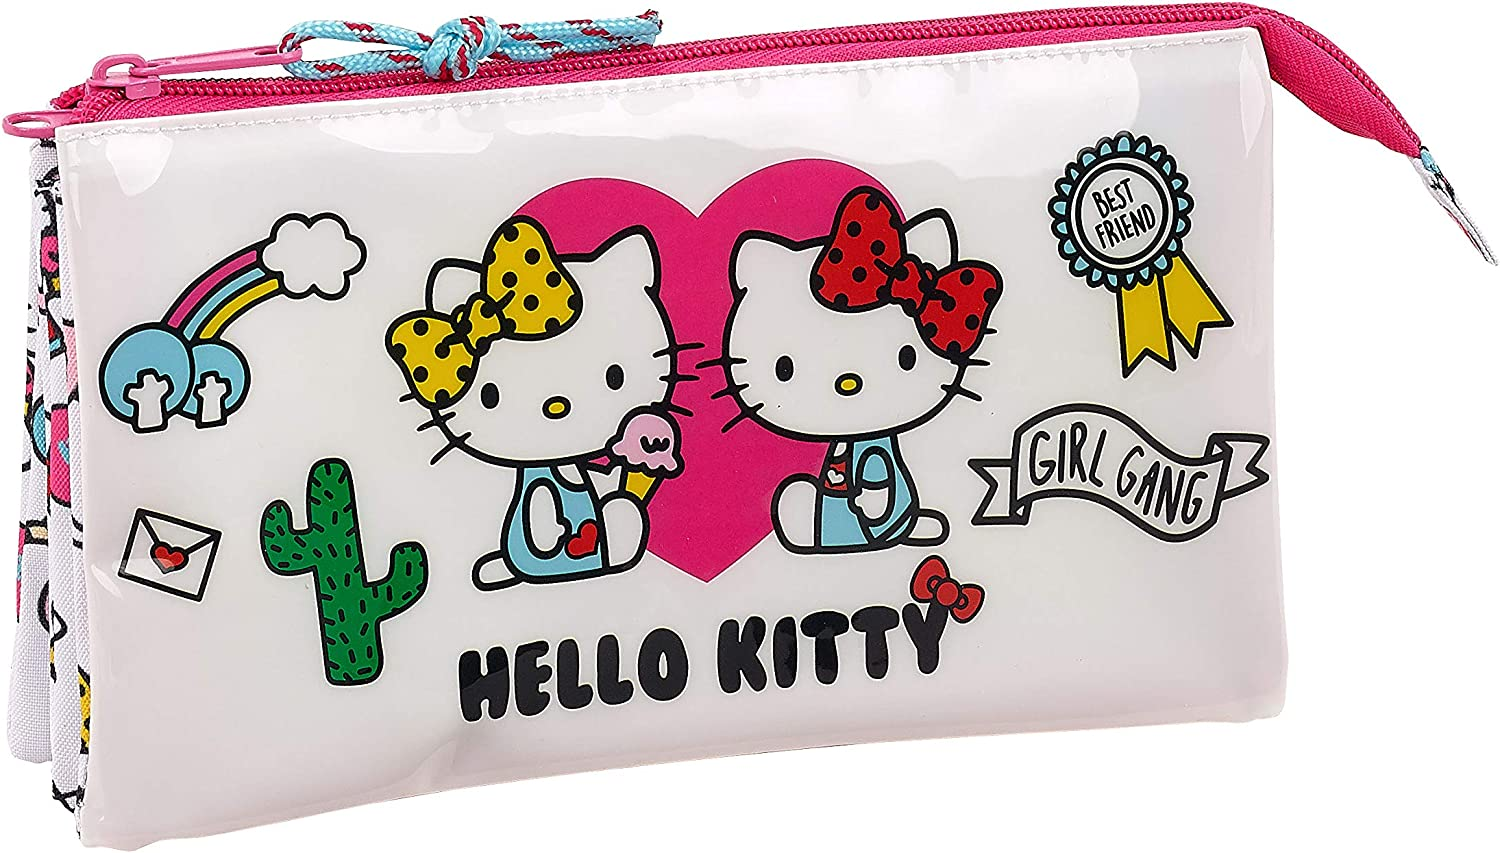 Rose Hello Kitty 2018 Trousse /à Maquillage 3.75 liters 26 cm Rosa